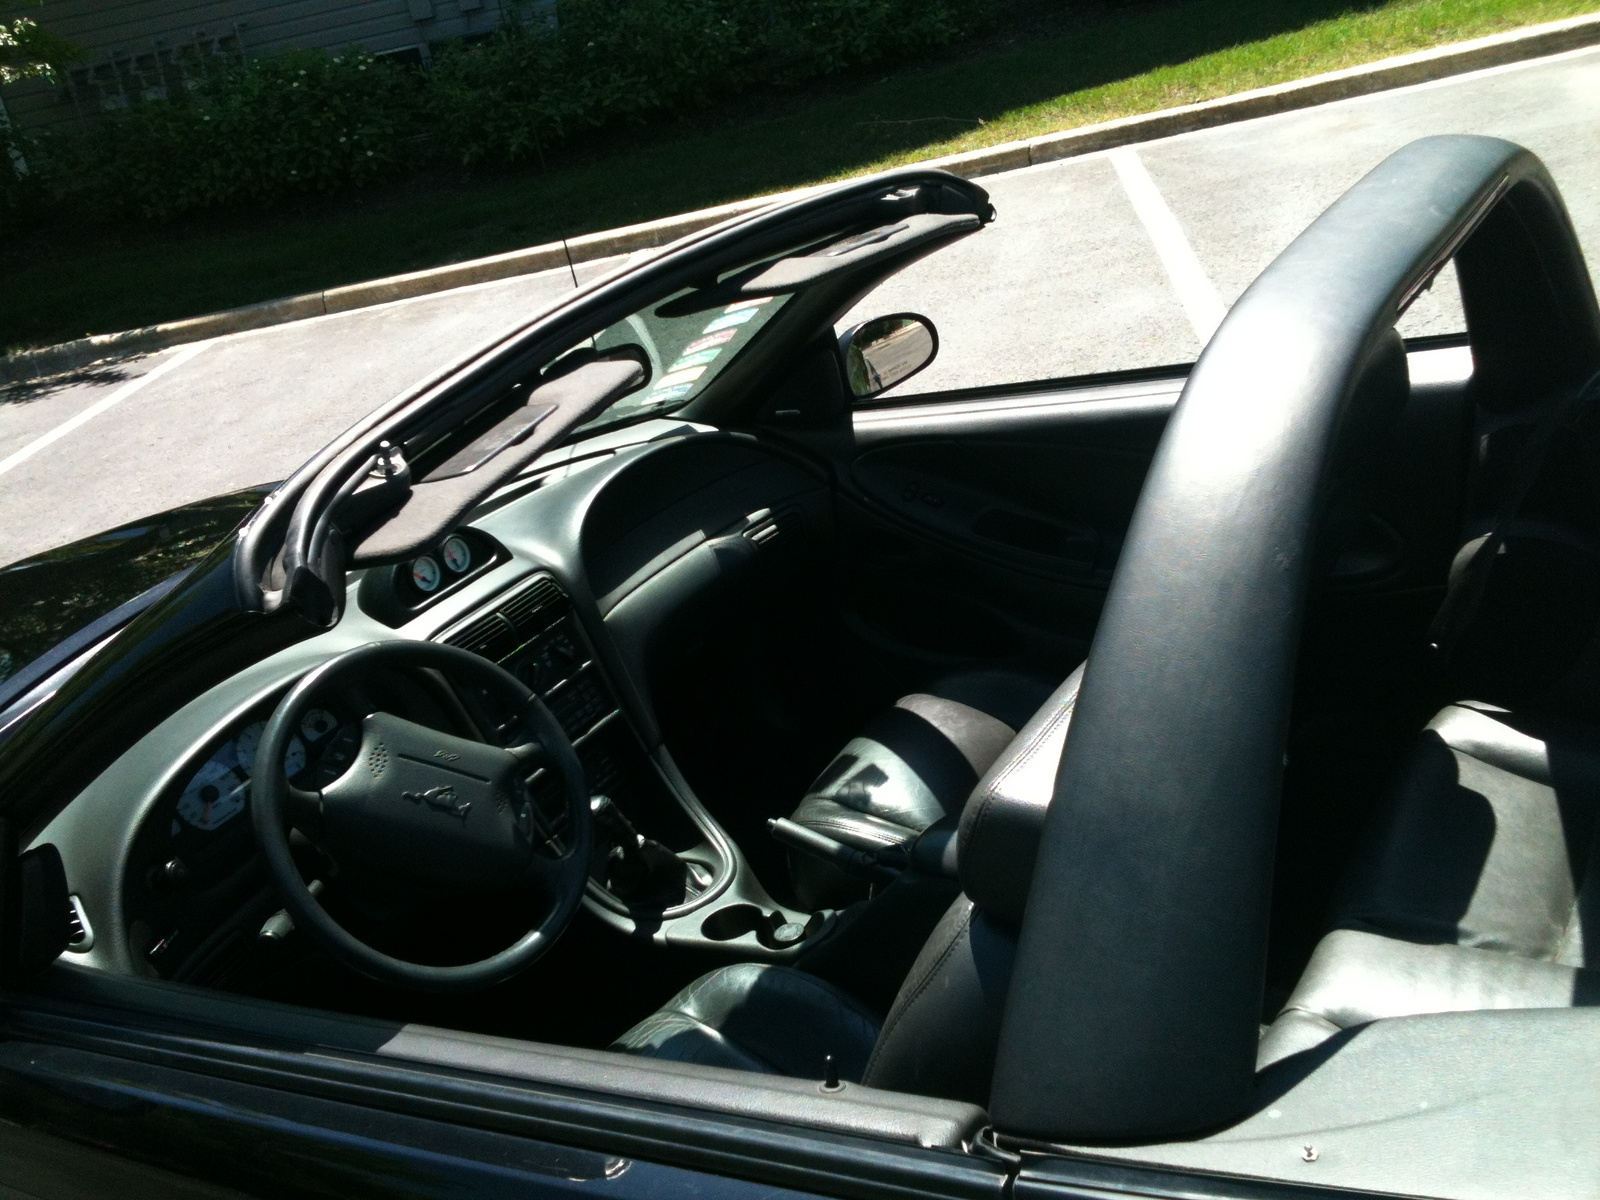 2000 Ford Mustang Interior Pictures Cargurus